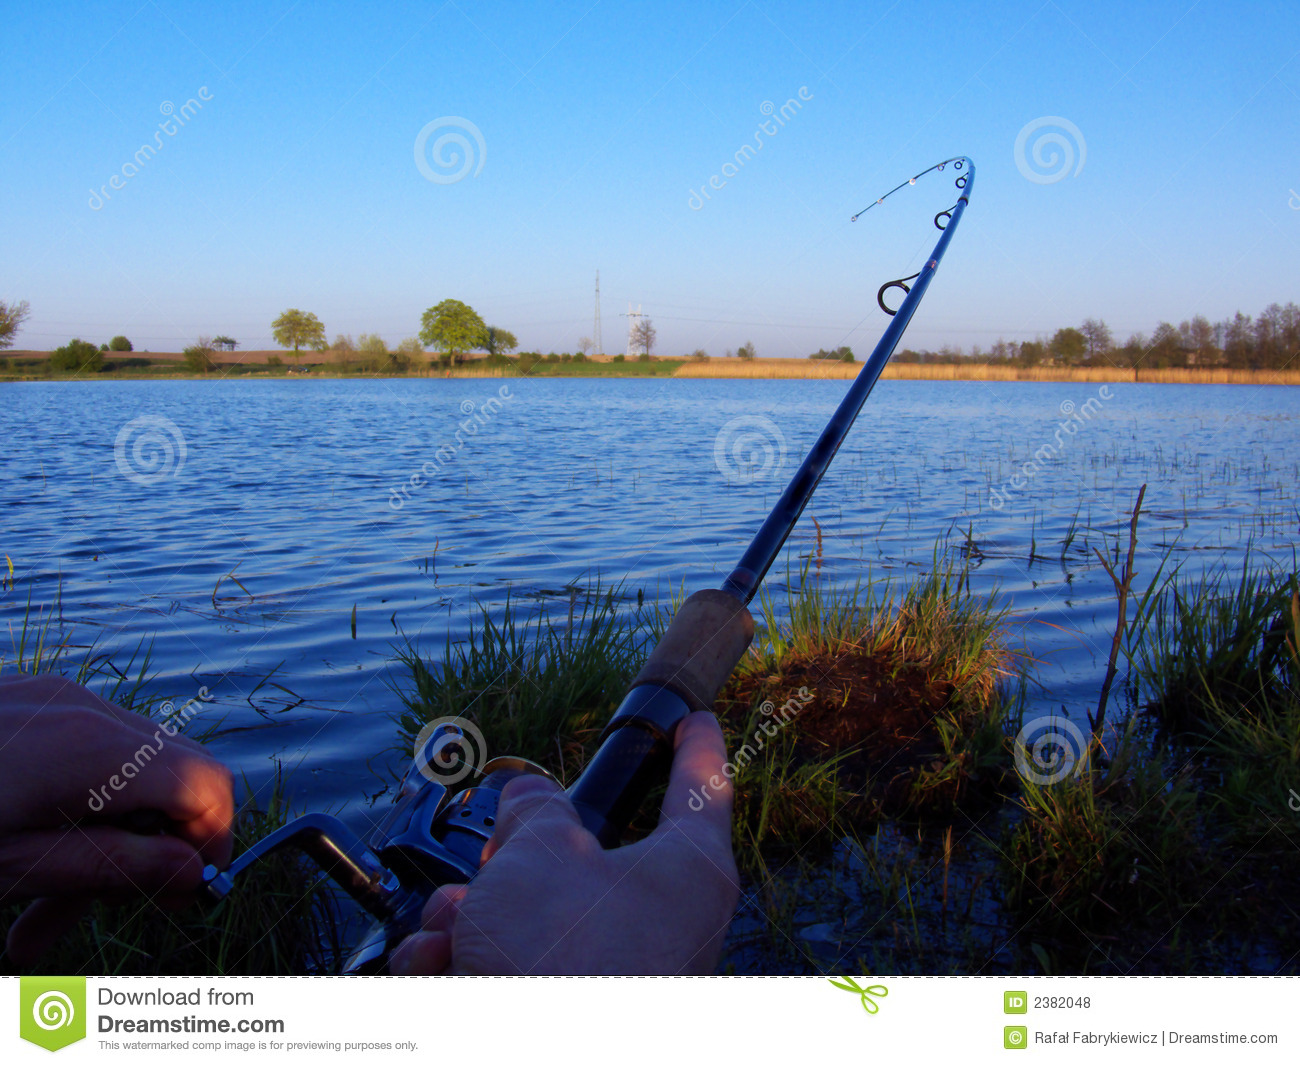 Fishing time royalty free stock photos image 2382048 for Fishing times free